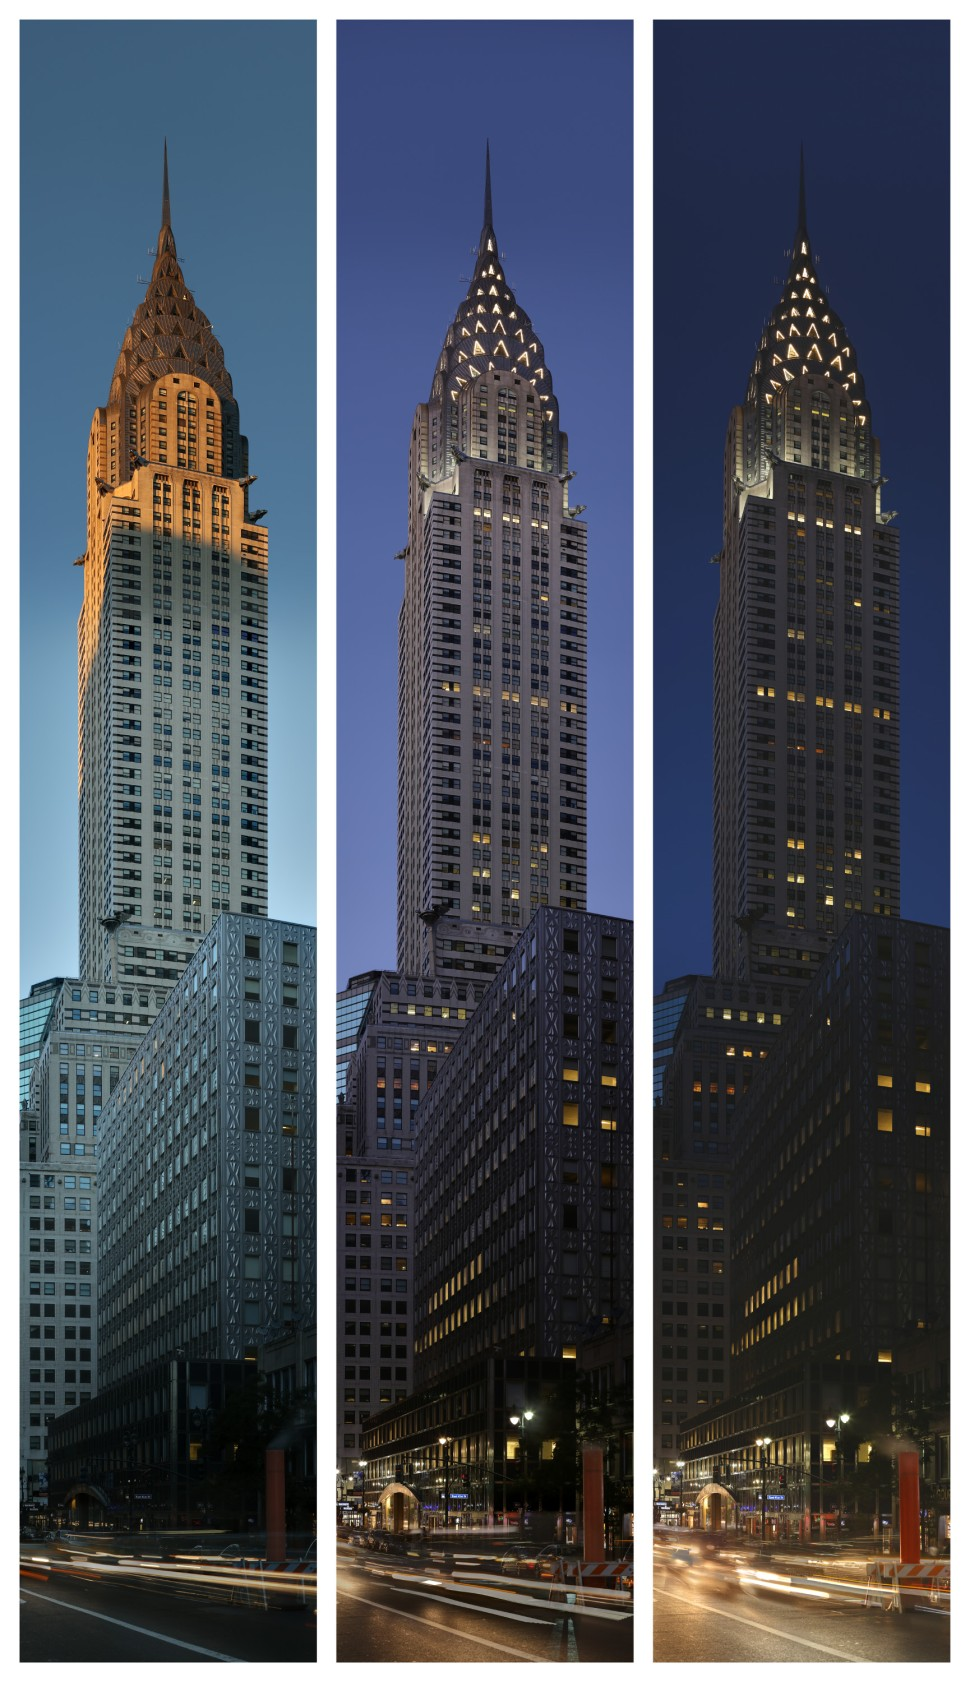 chrysler_building-_day_into_night_21920624861